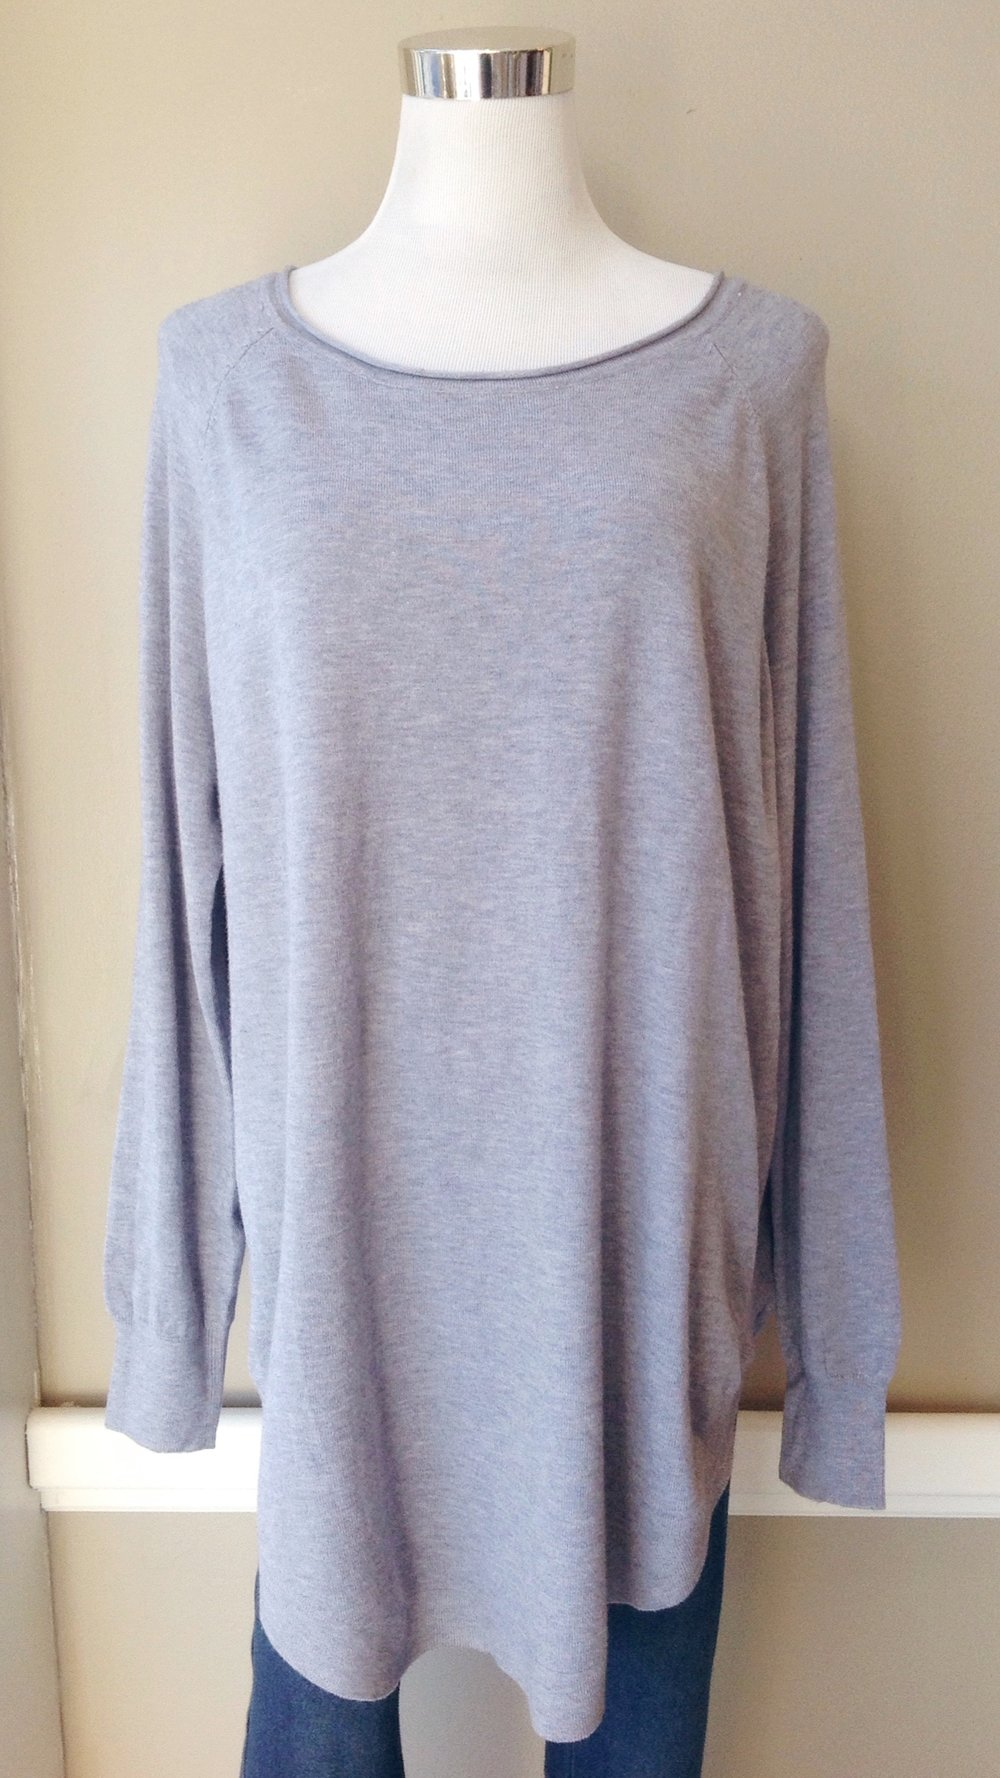 Ultra soft oversized sweater with rounded hem in dust blue, $40